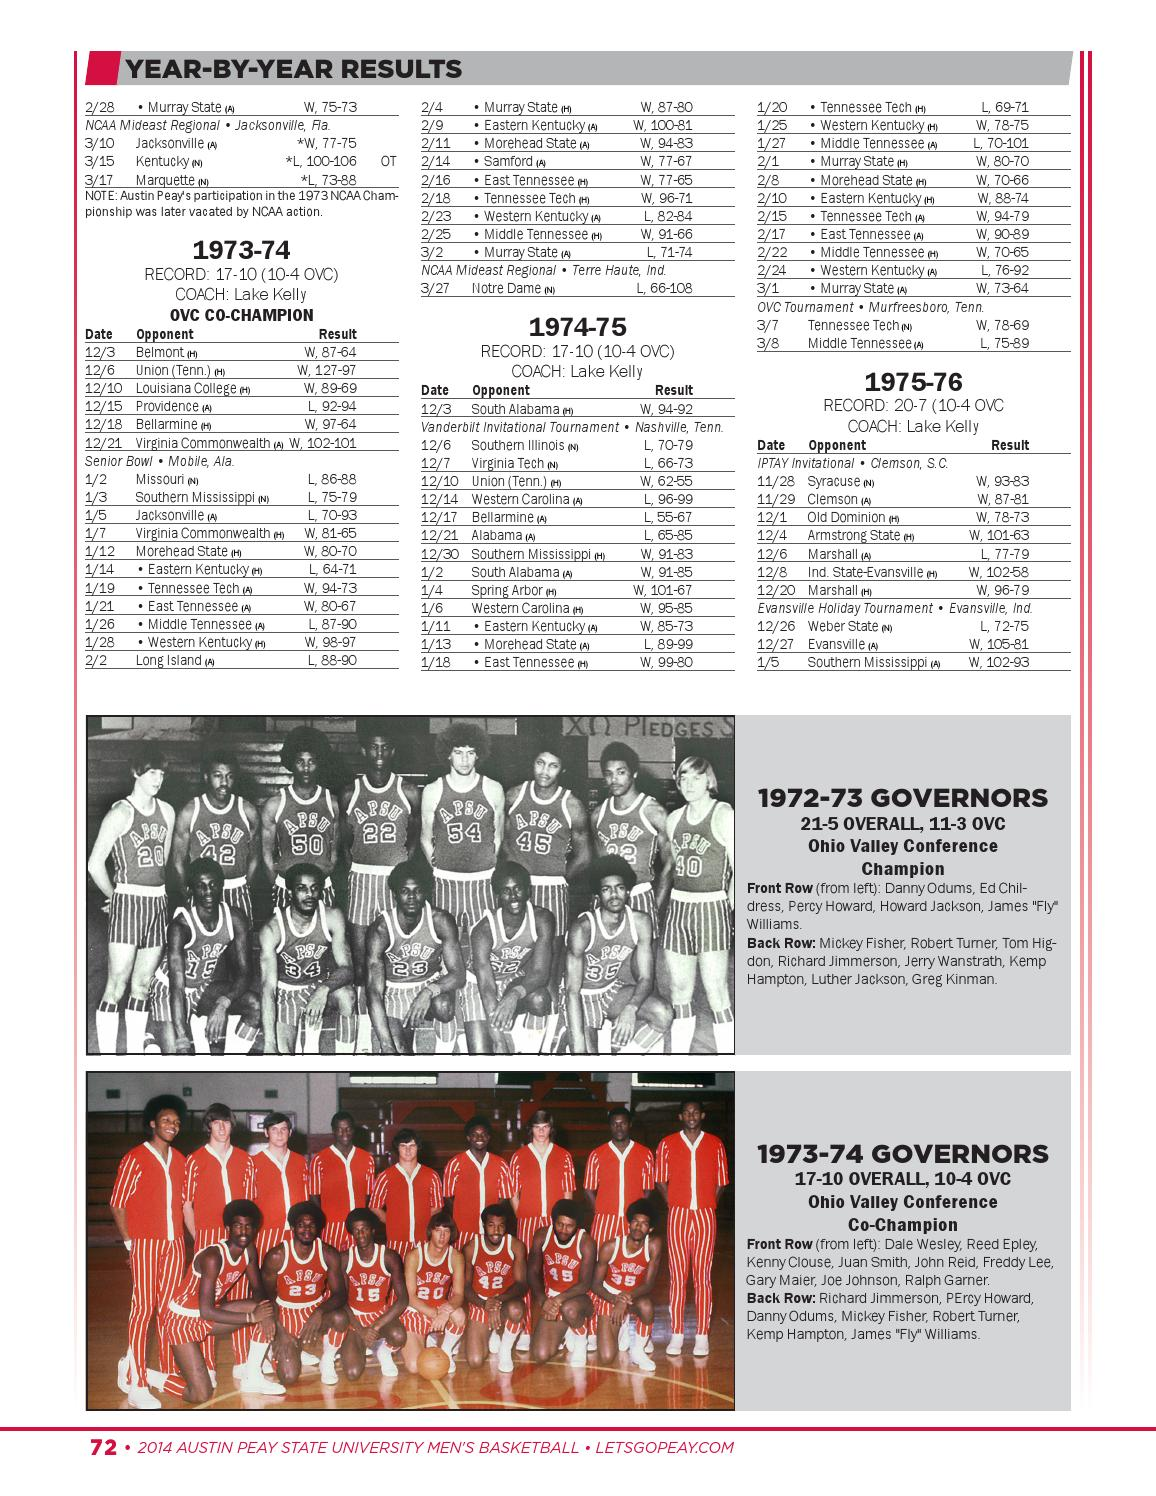 2014 15 Austin Peay Men S Basketball Media Guide By Apsu Sports Information Issuu